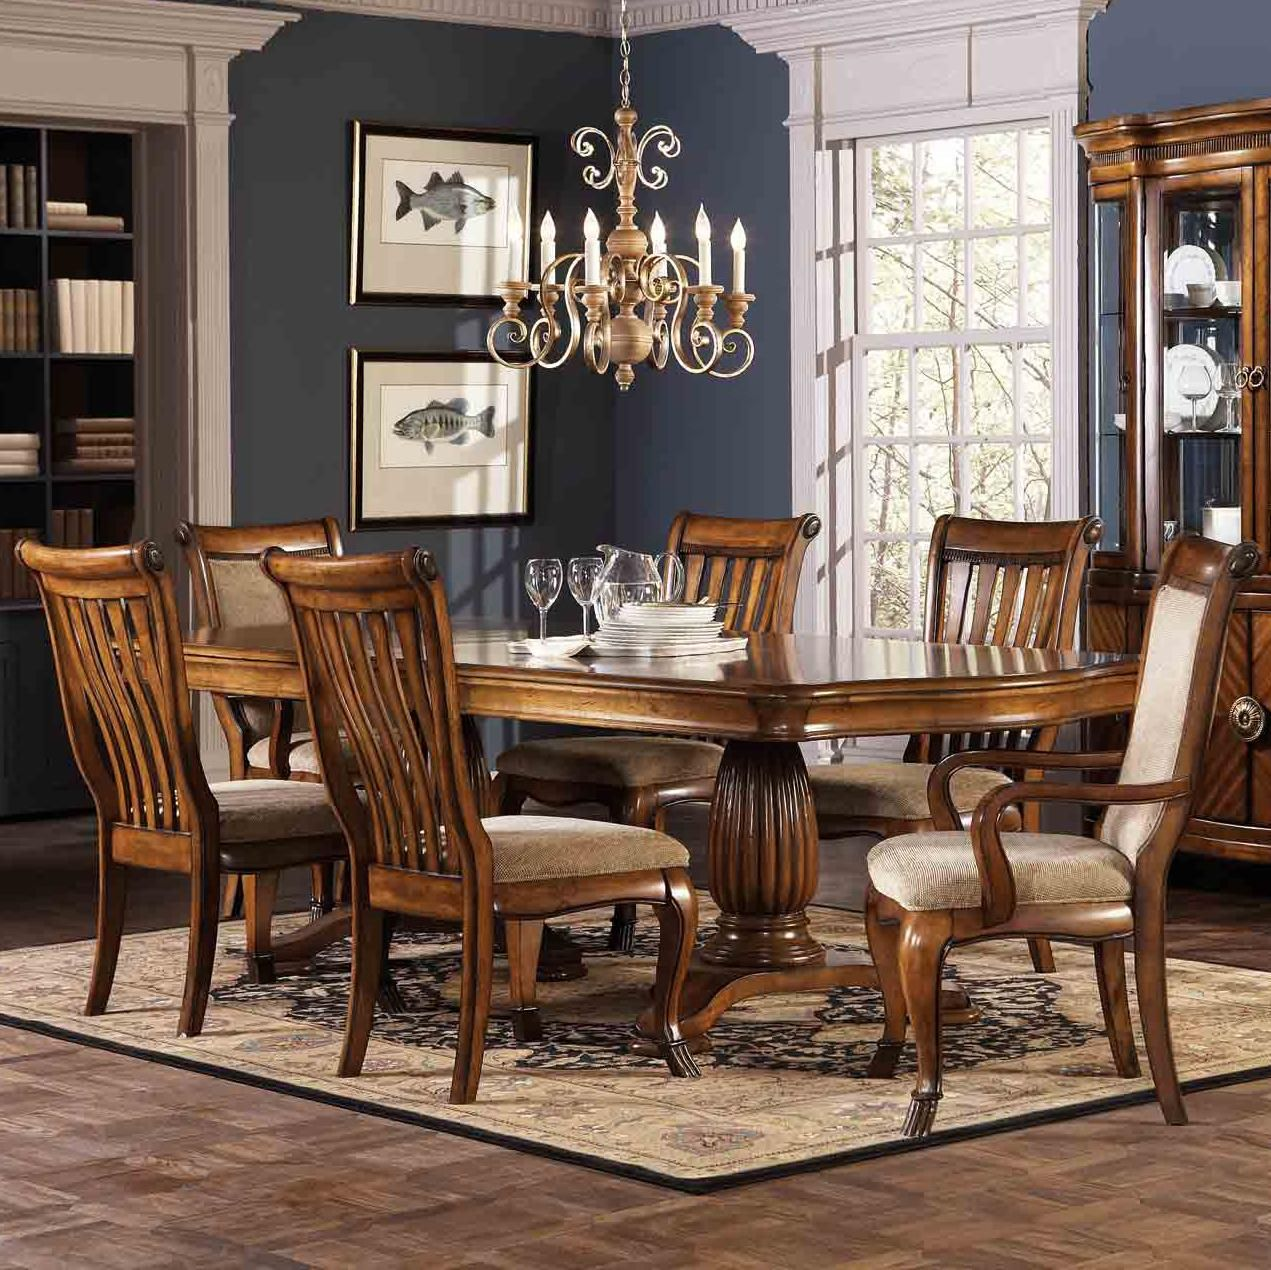 Saphrina 7 Piece Dining Table And Chairs Set By Coaster This